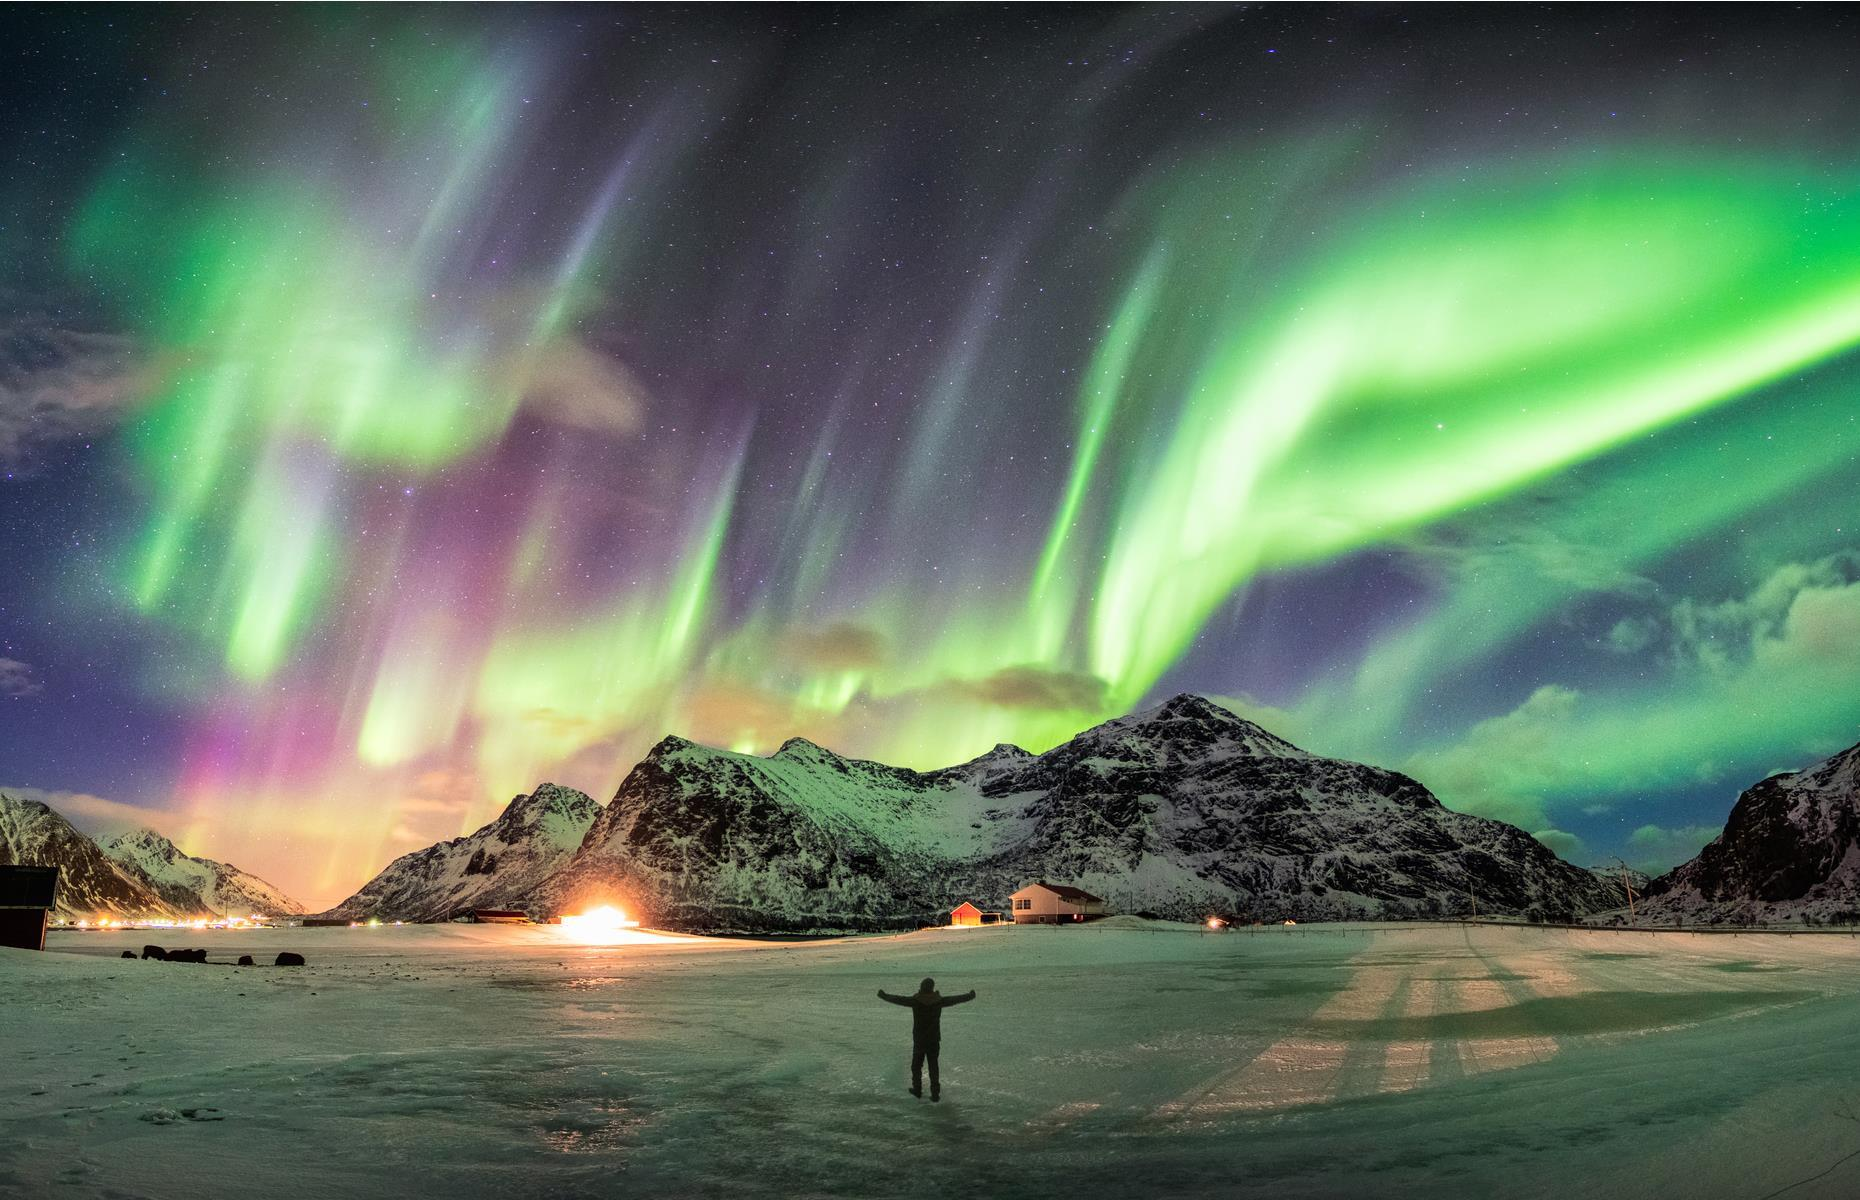 Slide 23 of 25: This area of Norway is also located beneath the auroral oval, like Tromsø. What's more, Lofoten's many beaches are perfect for unobstructed views of nature's light show. Visitors often combine the experience with kayaking, snowshoeing or horseback riding.